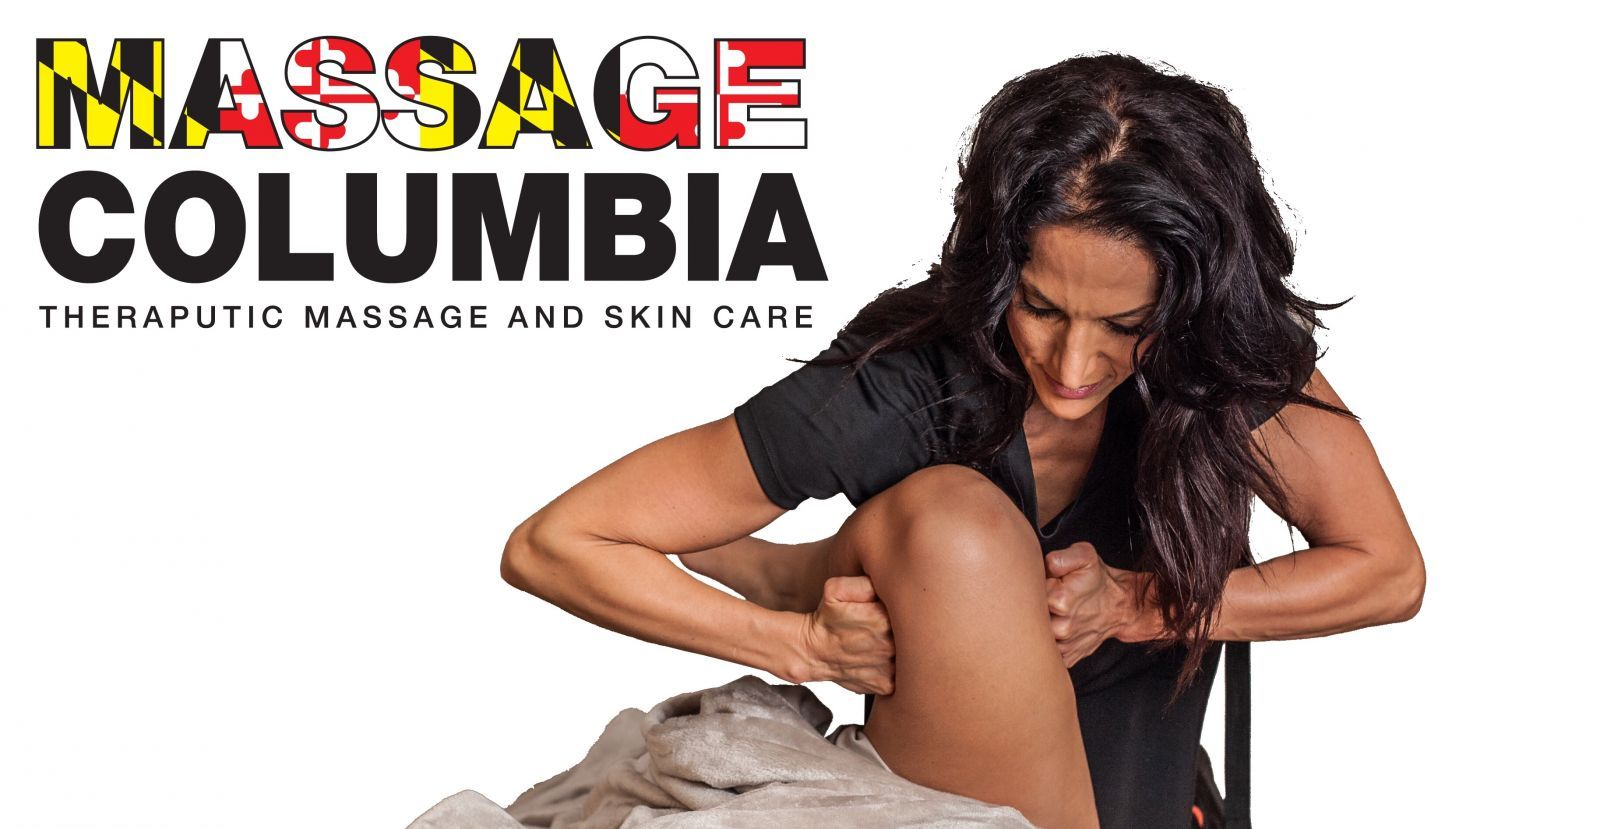 GIFT CERTIFICATES AVAILABLE ONLINE - Fathers Day Special at Massage Columbia. MassageColumbia.MassageTherapy.com/schedule-online #fathersday #massage #facial